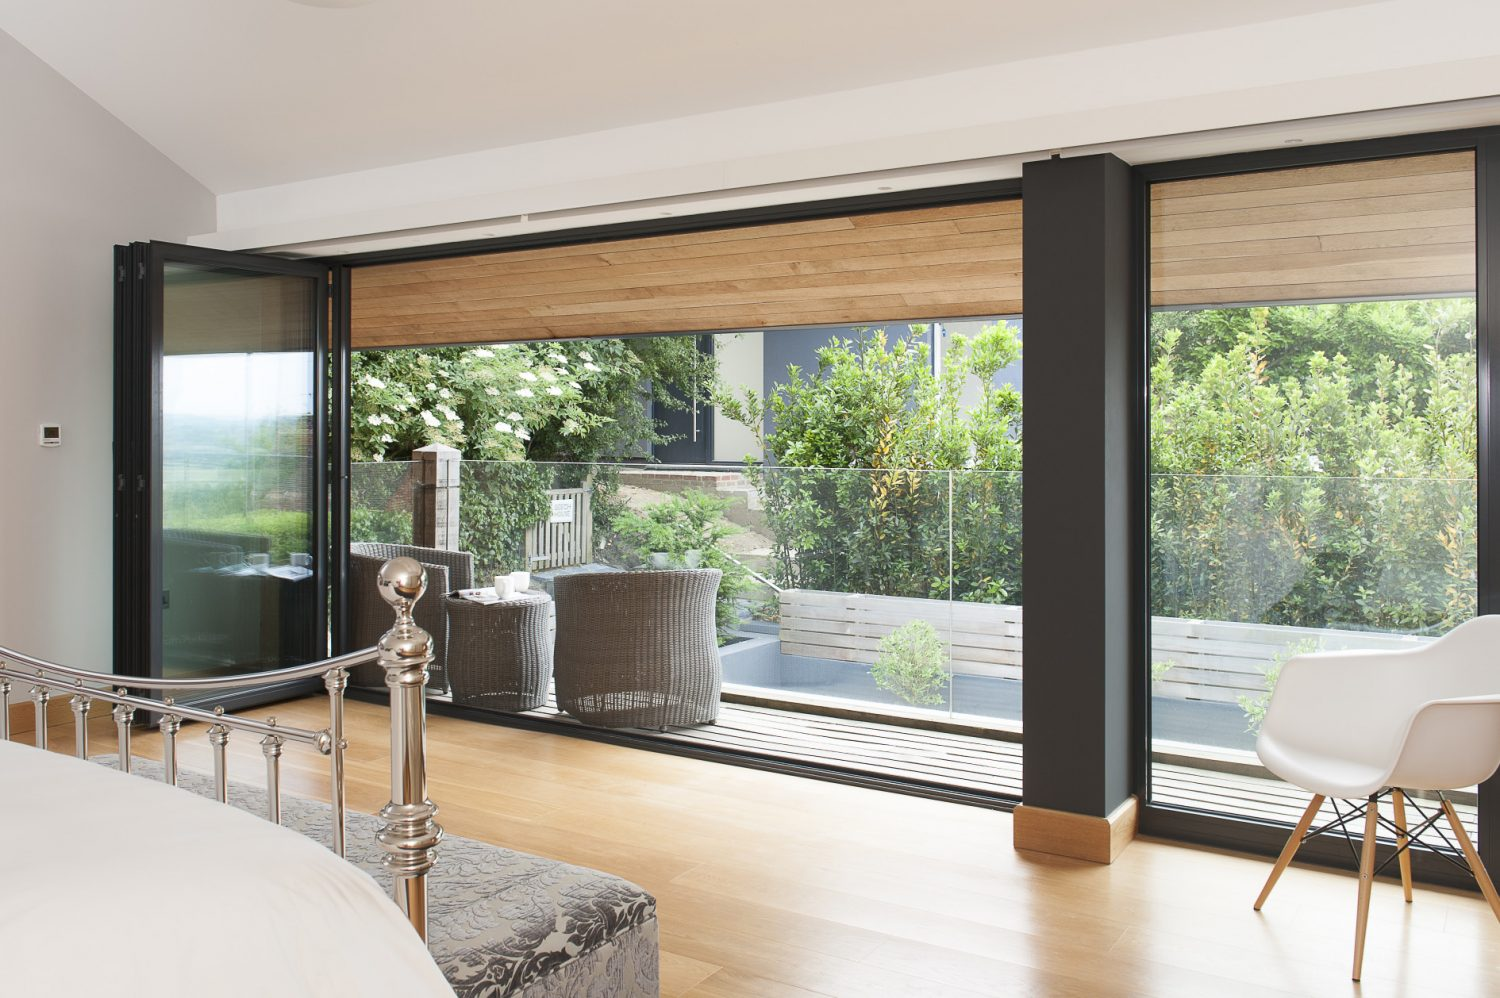 The wall of bi-folding doors is echoed upstairs in the master bedroom directly above the kitchen where they open out onto a decked balcony and more Lloyd Loom surrounded by a plate glass balustrade